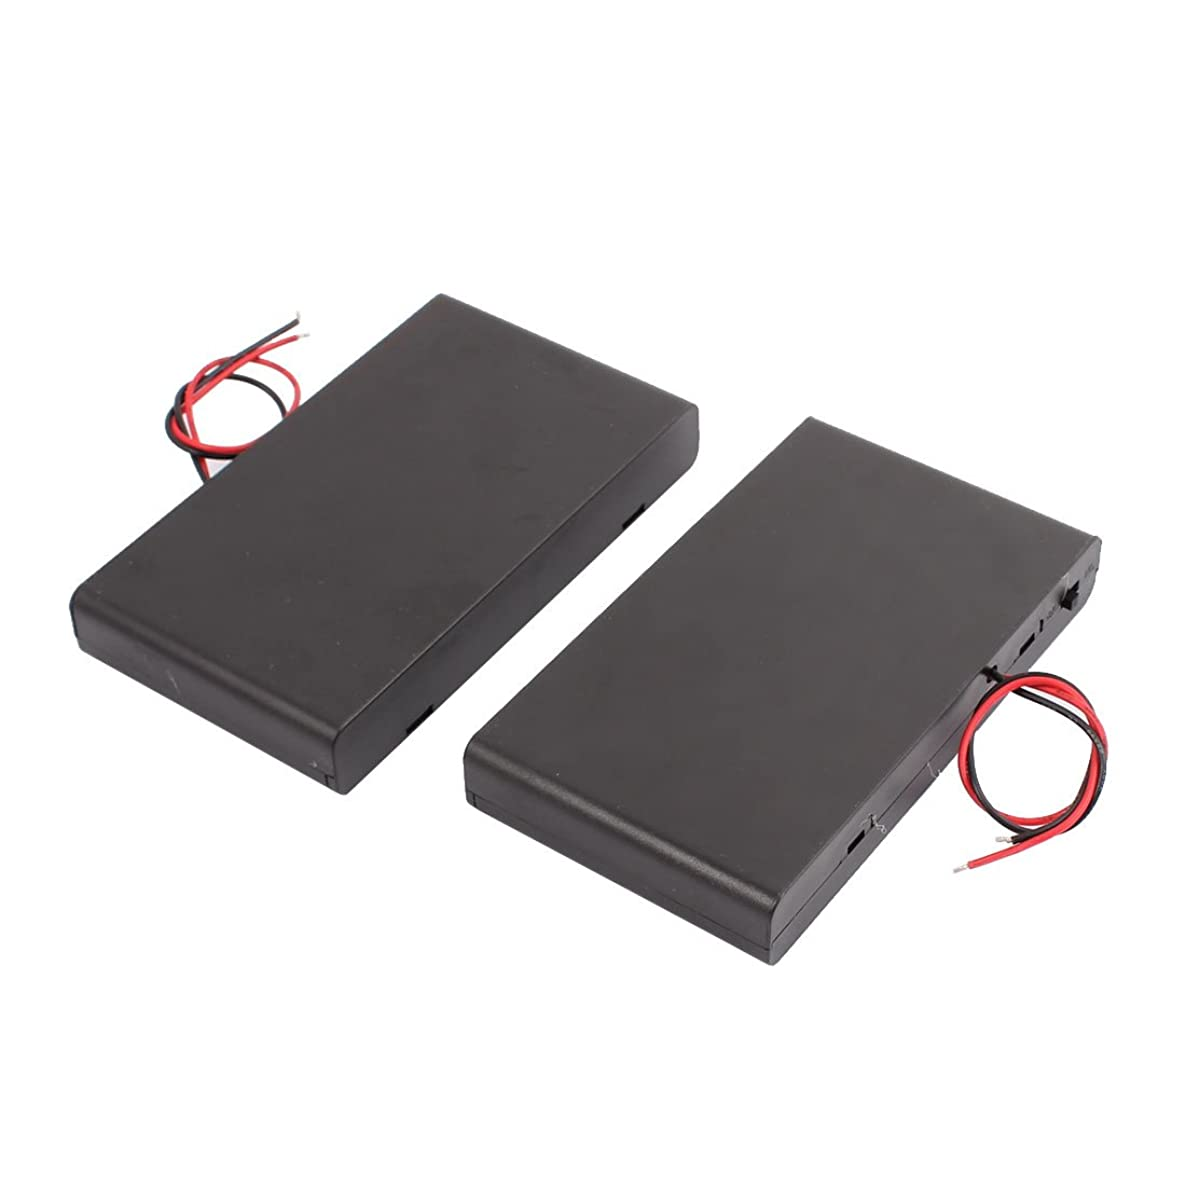 Aexit 2 PCS Household Batteries 12V Battery Box 8 x 1.5V AA Cell Battery to 2 Wire 3.7V w Switch